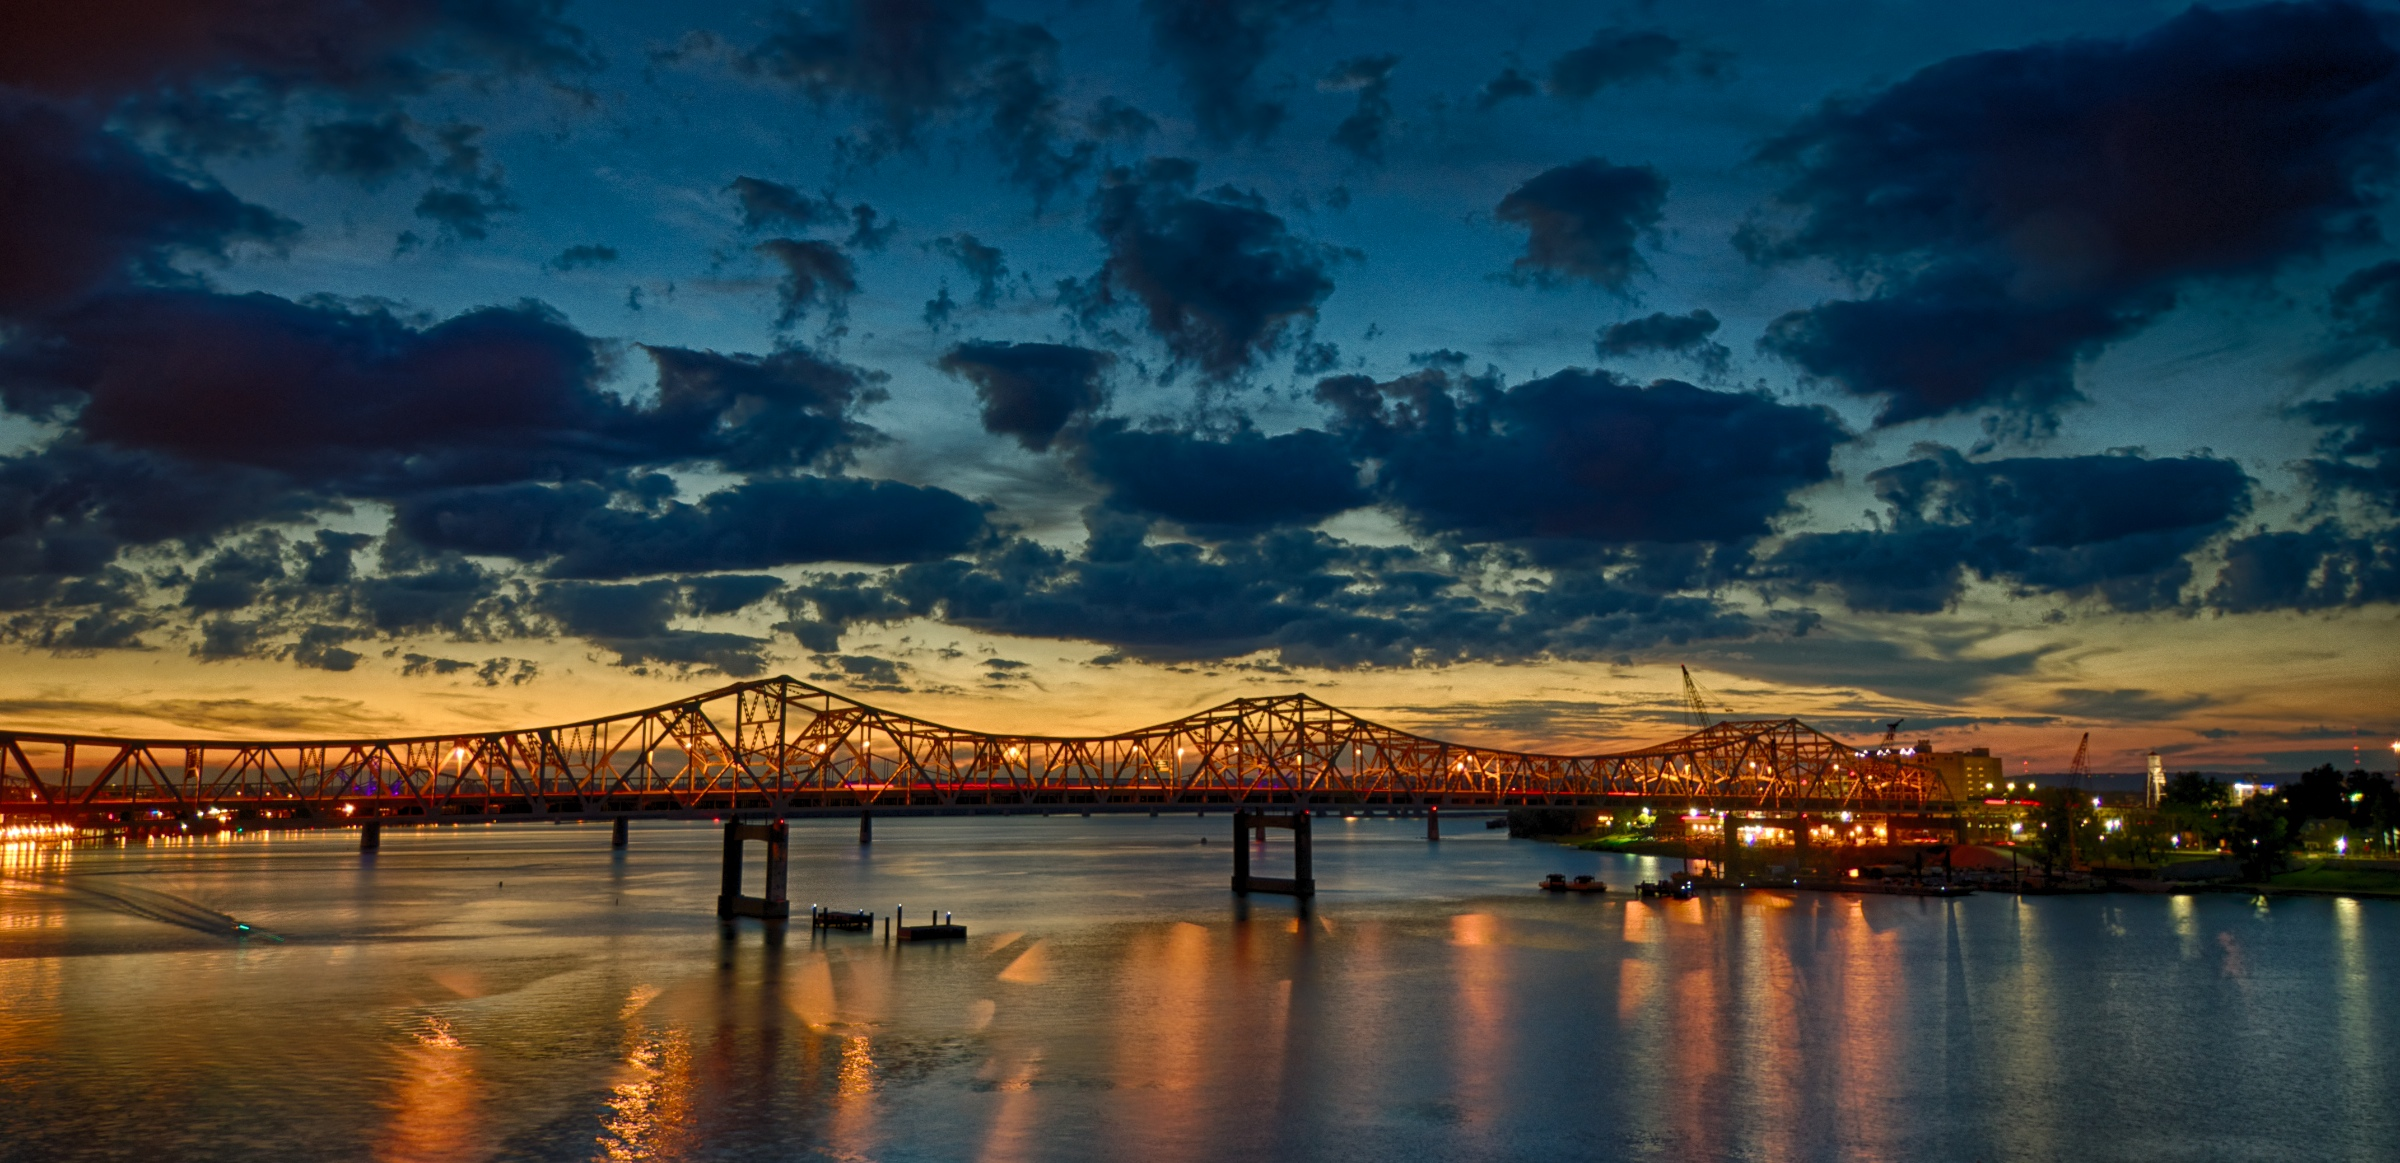 The Sun Sets On The New Bridge Site in Louisville KY